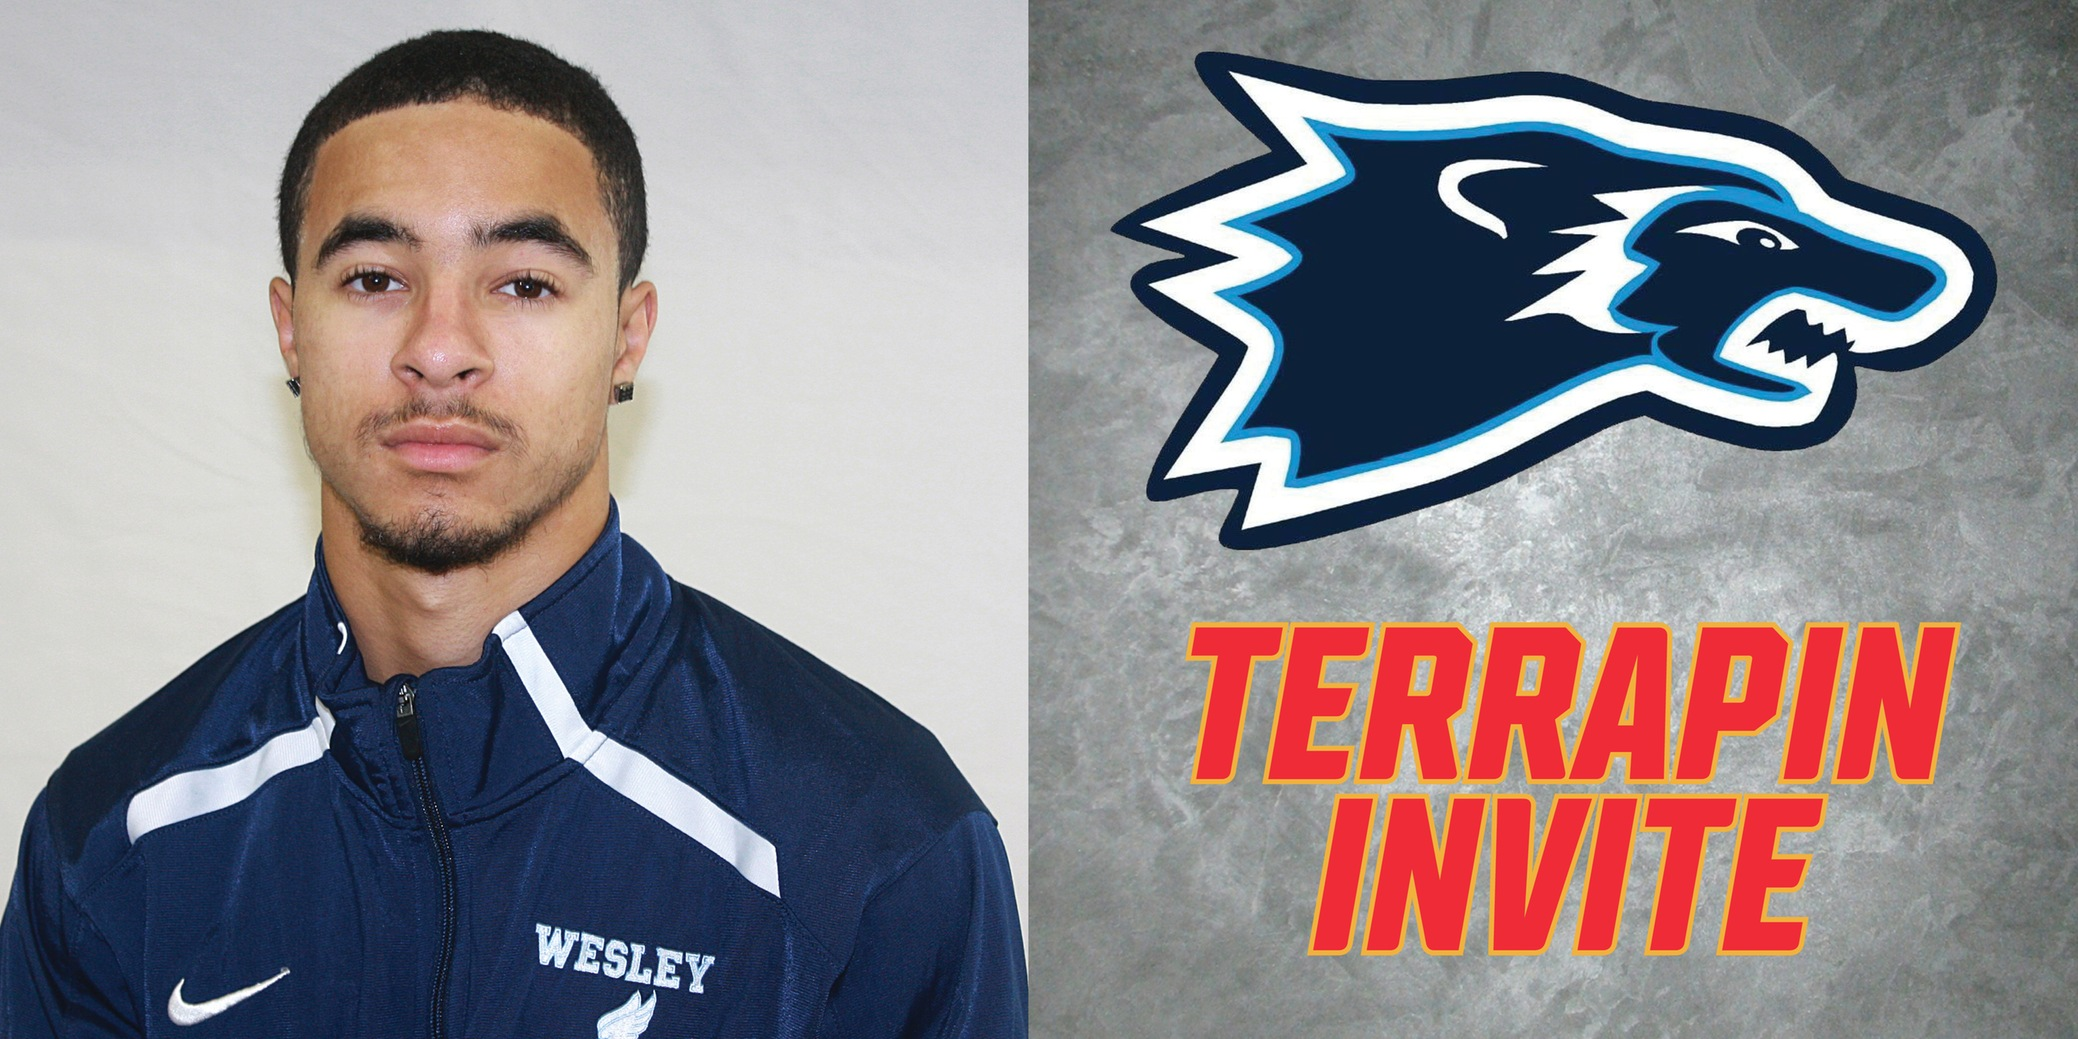 Men place in Top 10 at Terrapin Invitational